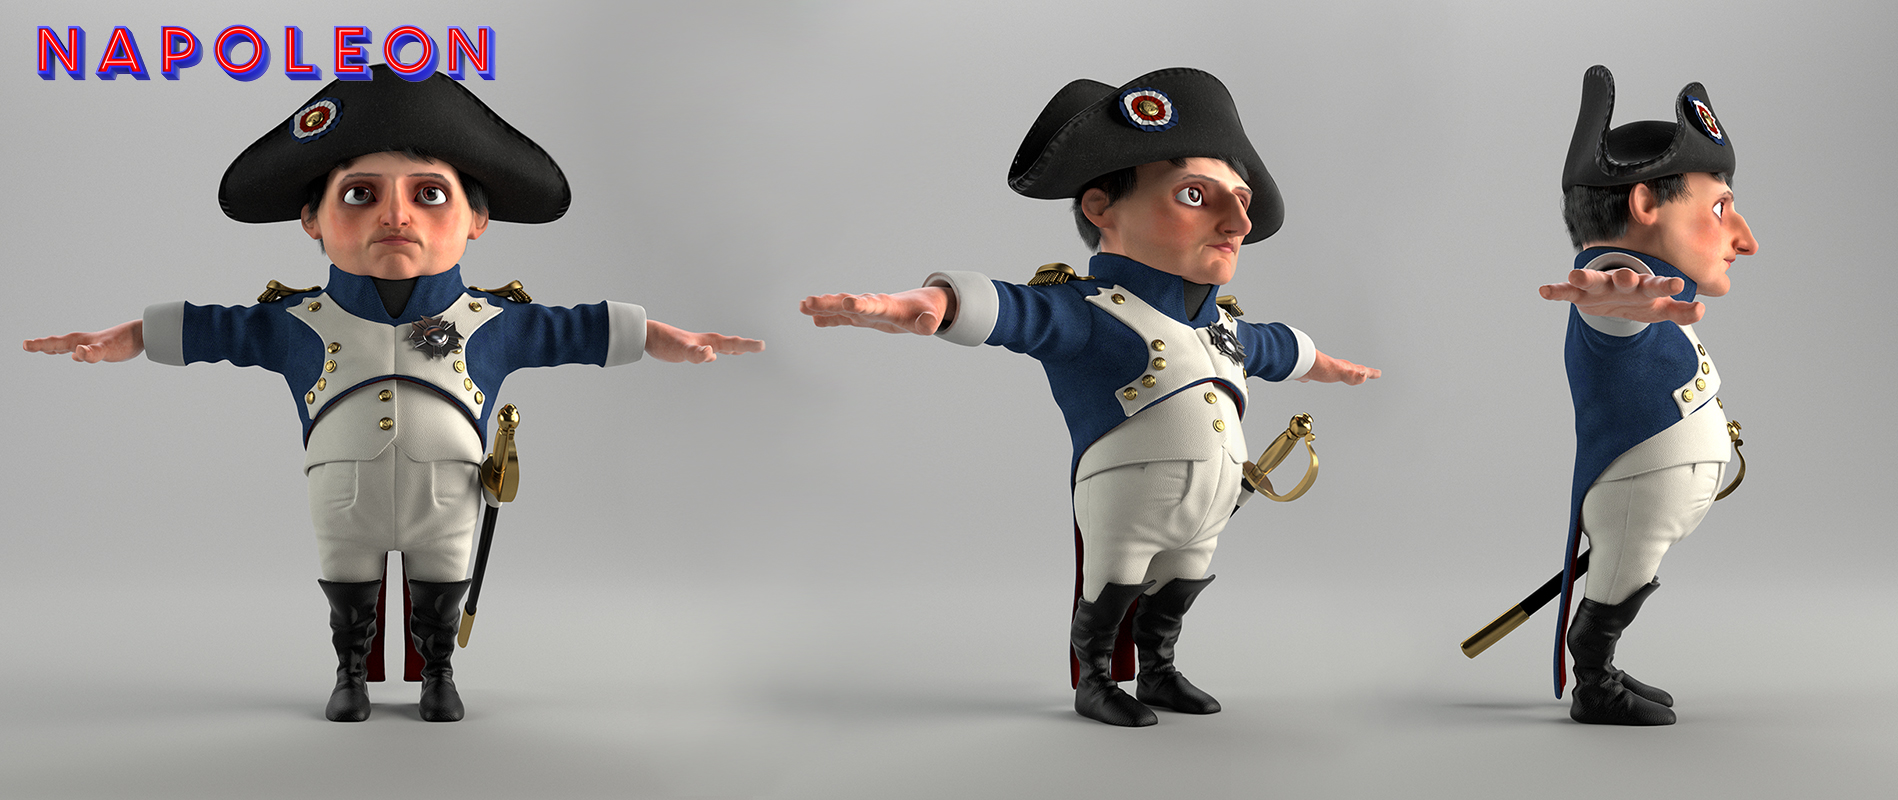 Napoloen character rendered in Vray